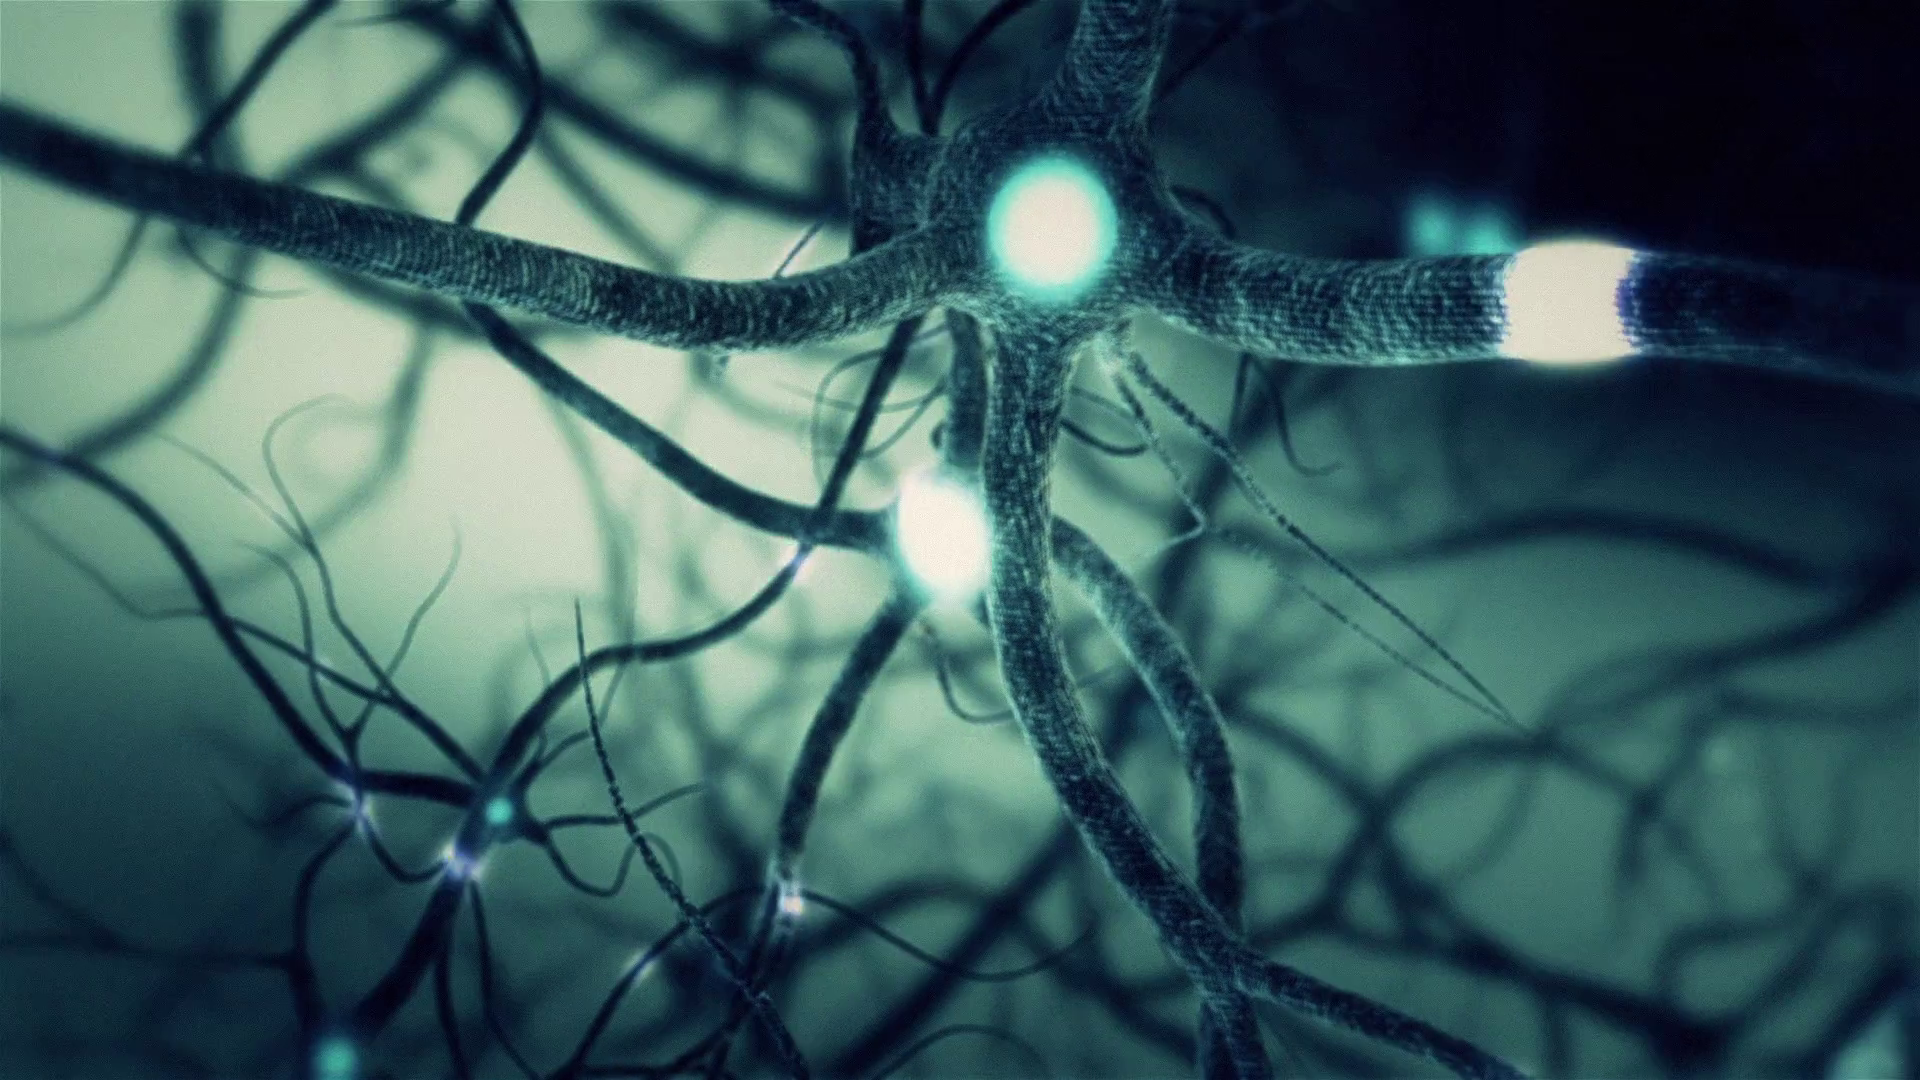 green-neuron-synapse-network-3d-animation-infinite-loop-inside-the-human-brain_rsahv9t8e_thumbnail-f